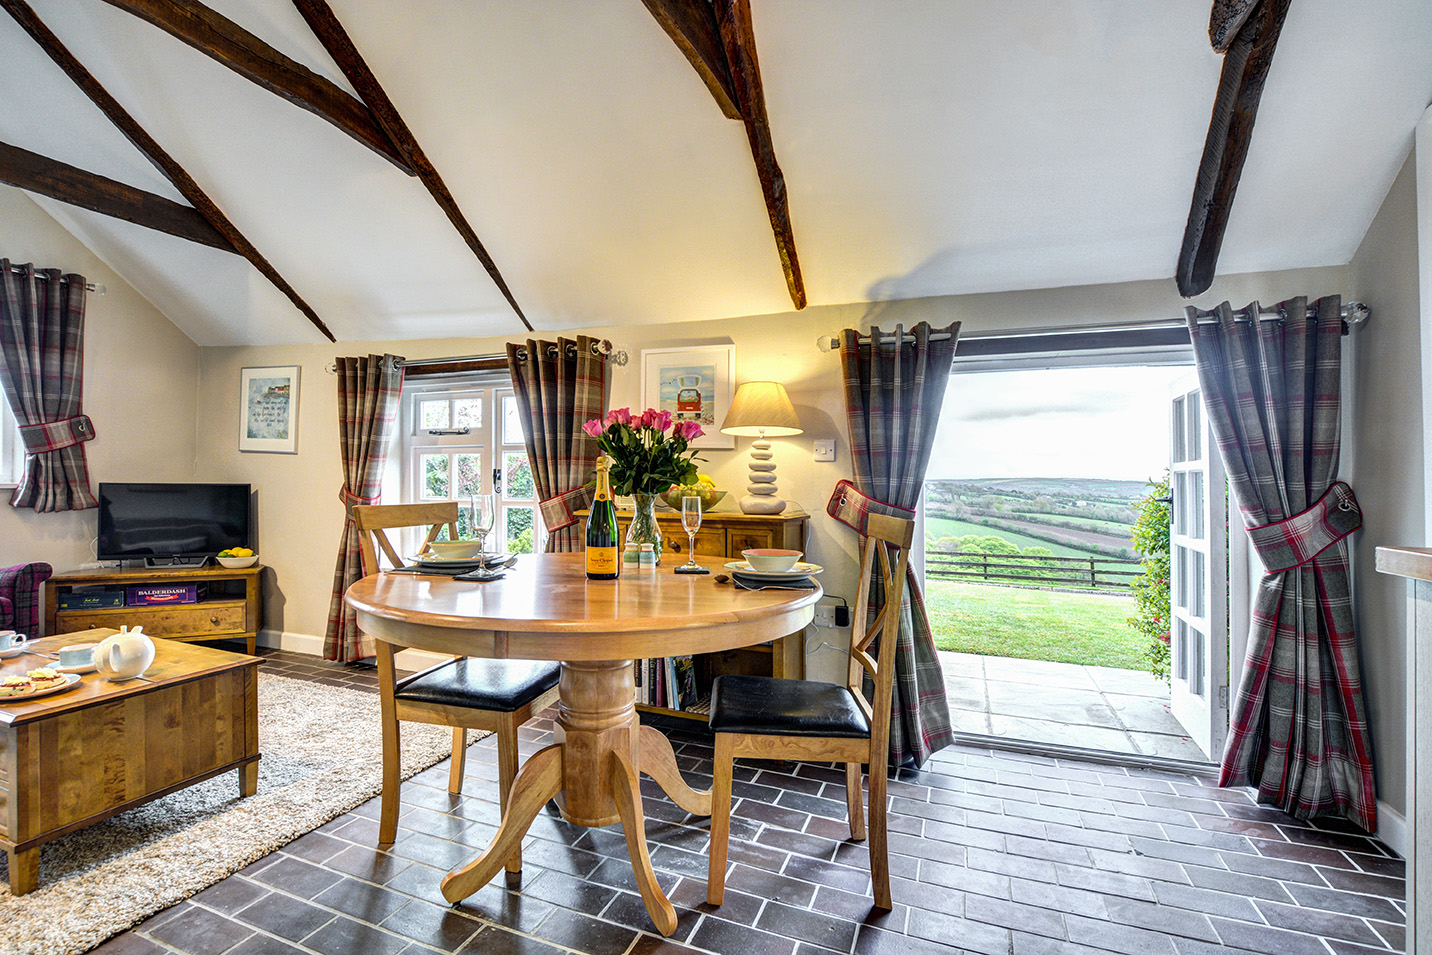 The lounge and dining area looking out the patio doors of The Linney self catering cottage converted barn at Penrose Burden holiday cottages in Cornwall.jpg